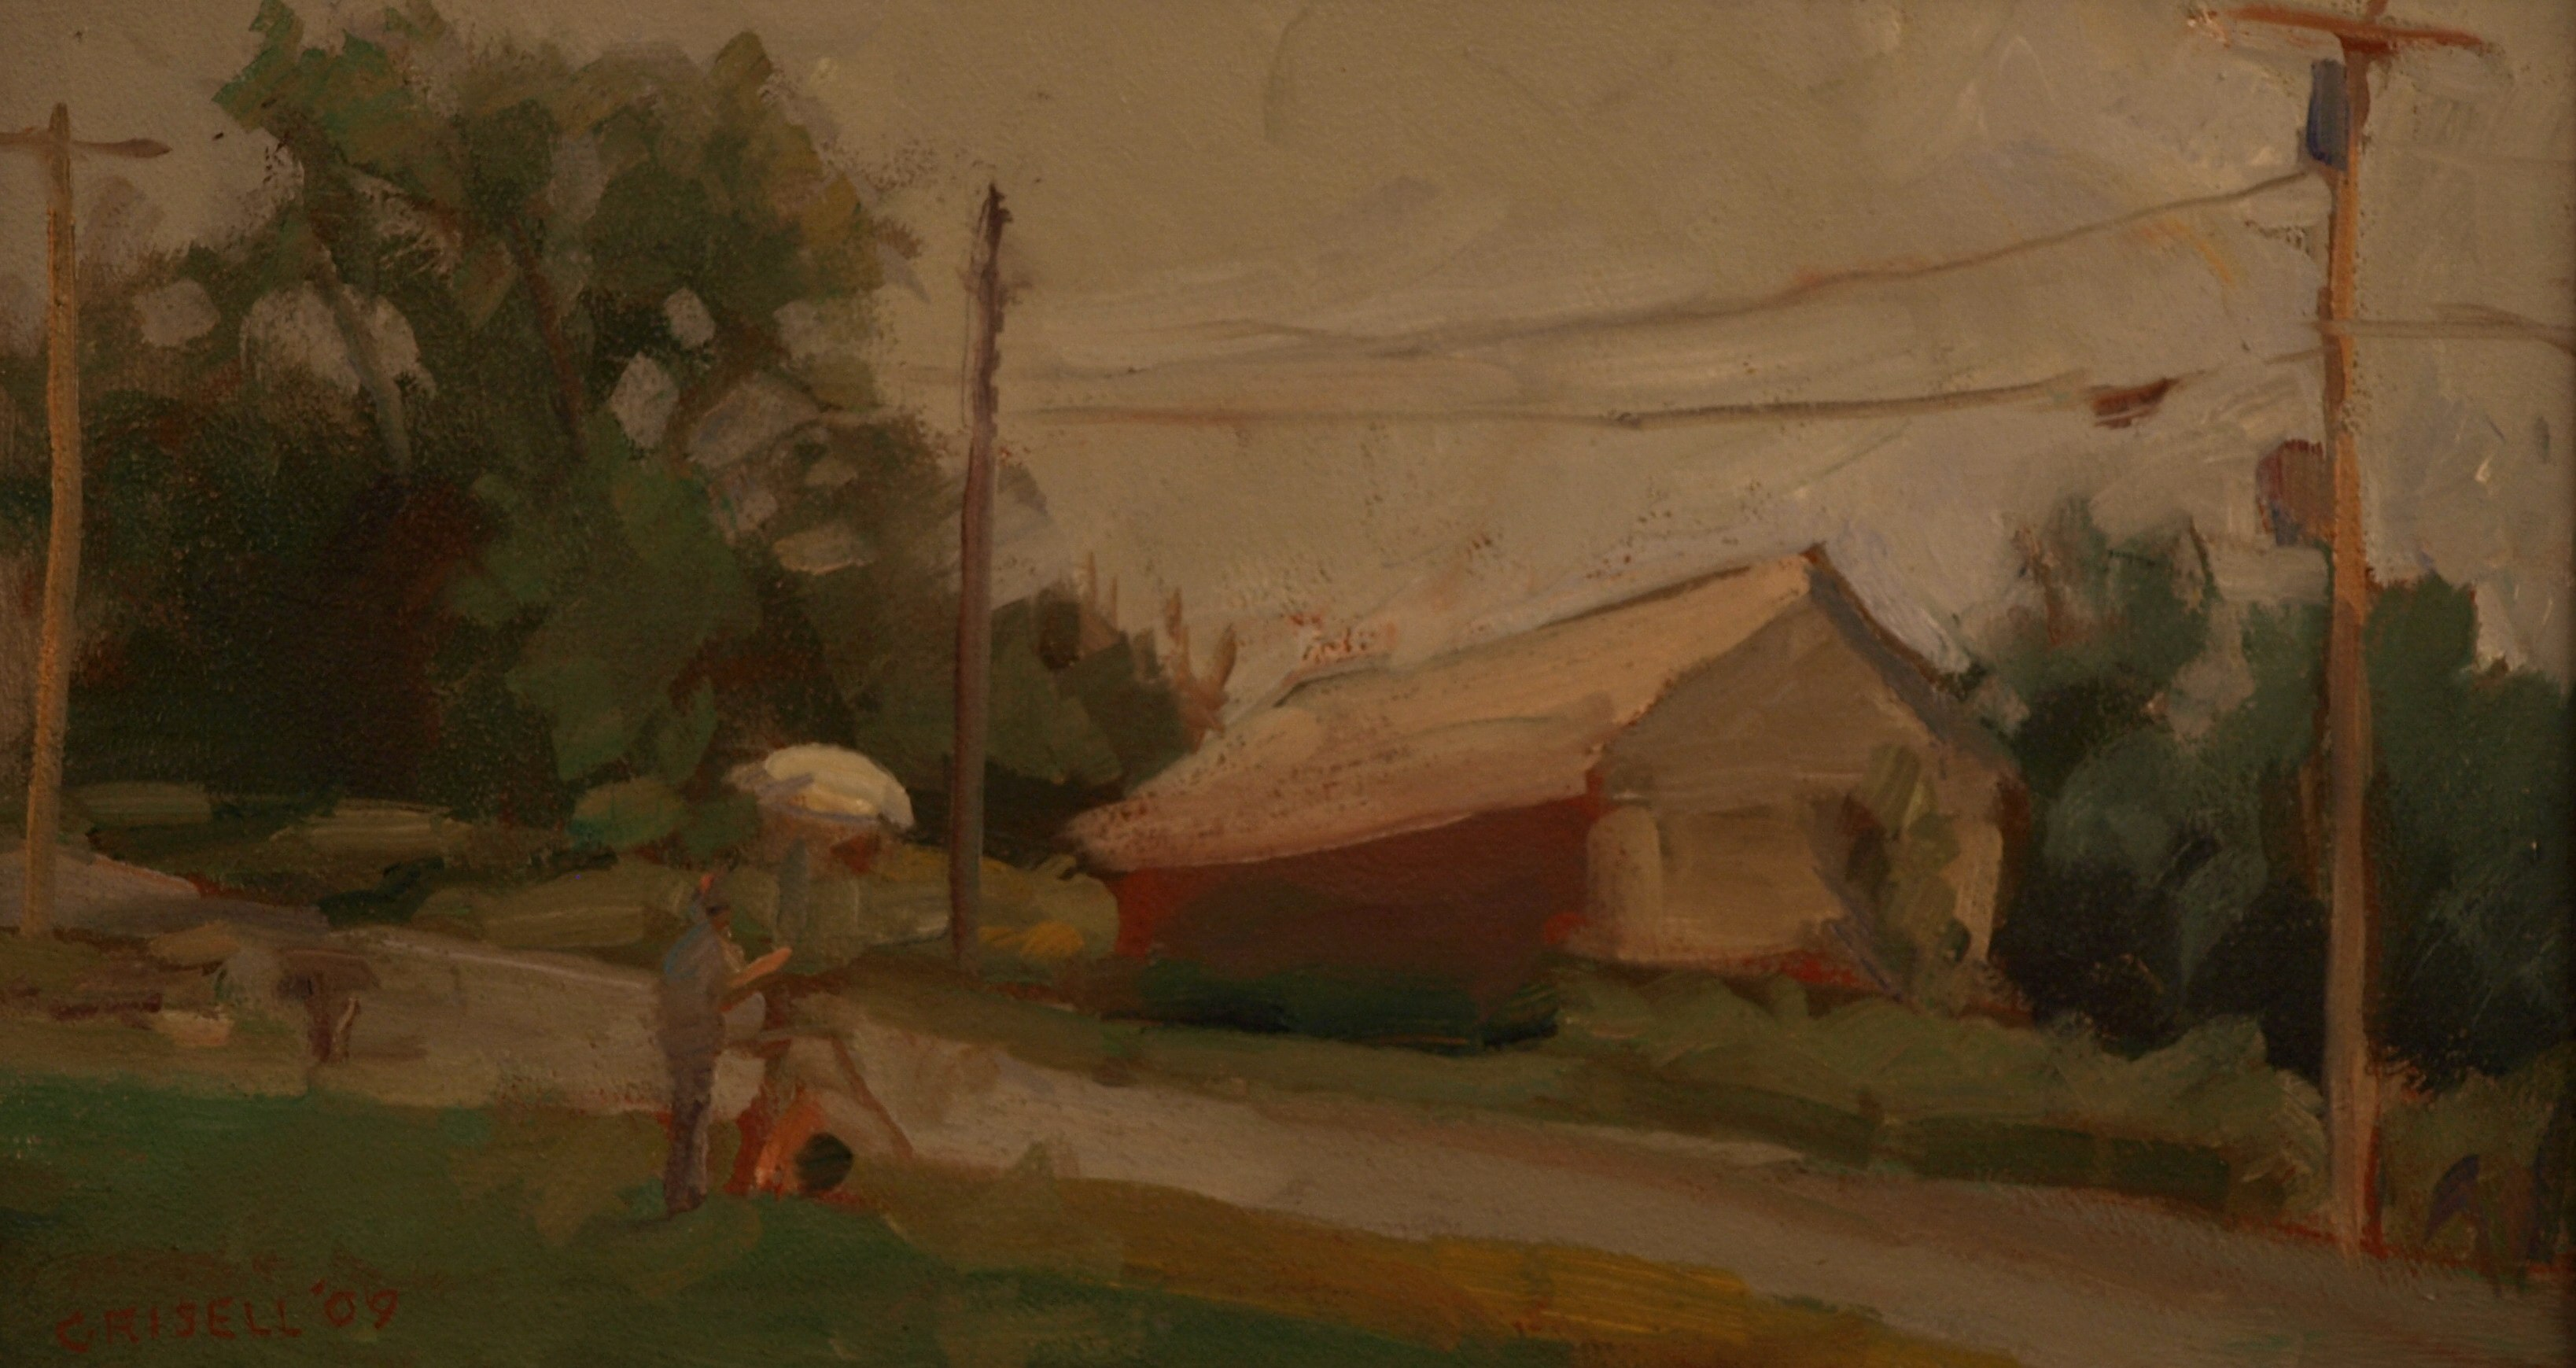 Bill Newton's Barn, Oil on Panel, 9 x 16 Inches, by Susan Grisell, $250